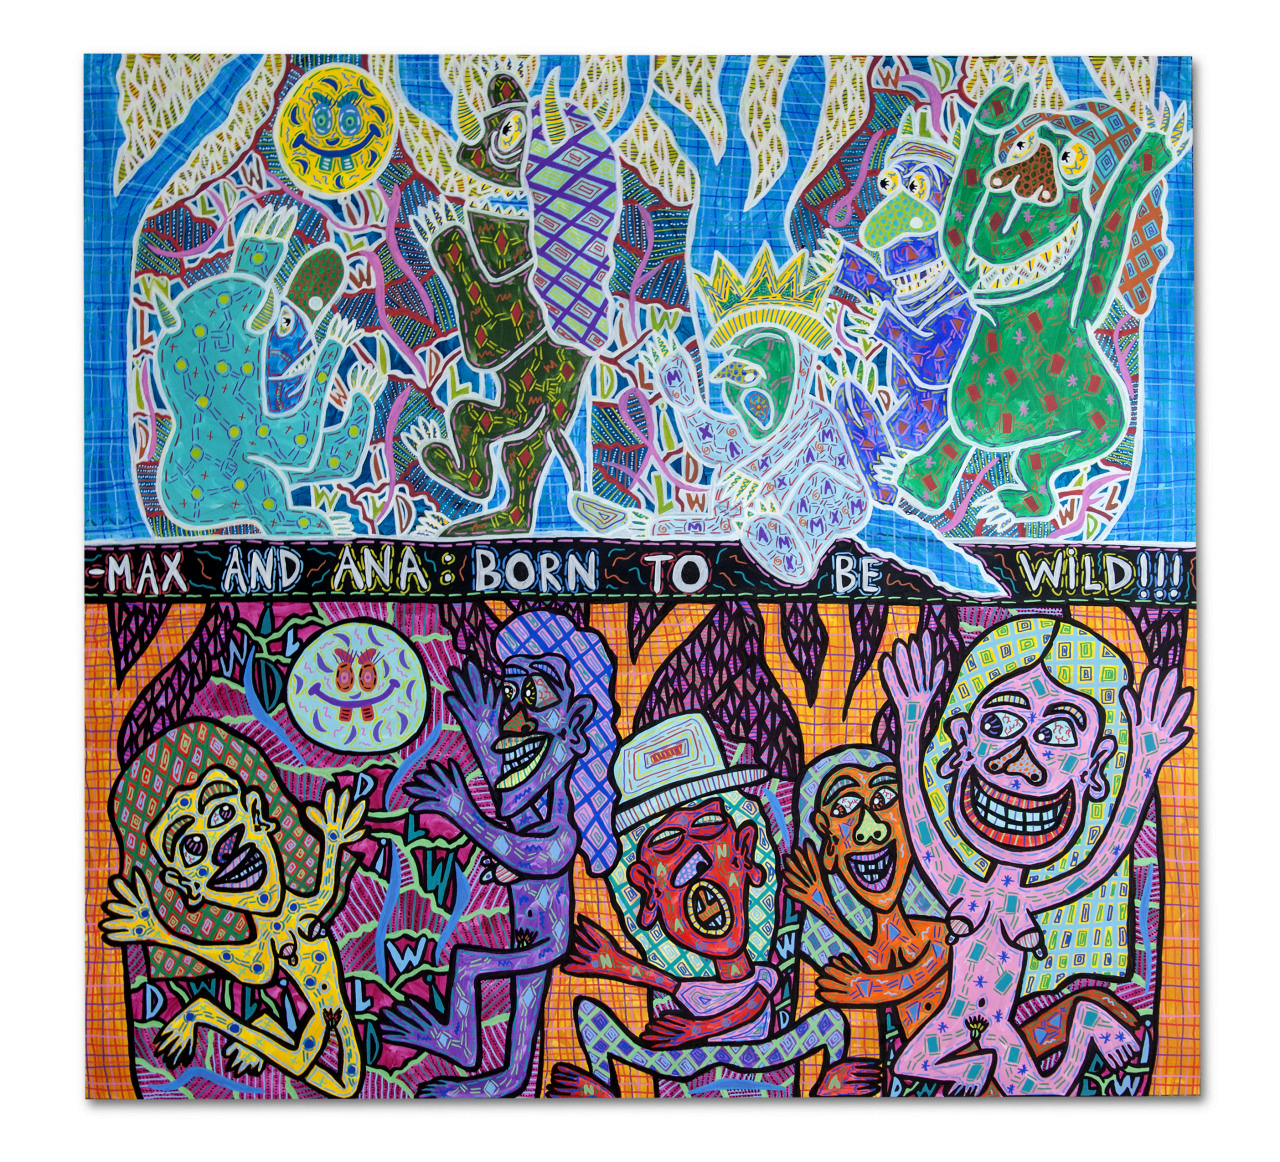 """""""Born to be wild!"""" , 2016   Acrylic paint and Posca marker on linen, 200 x 200 cm"""